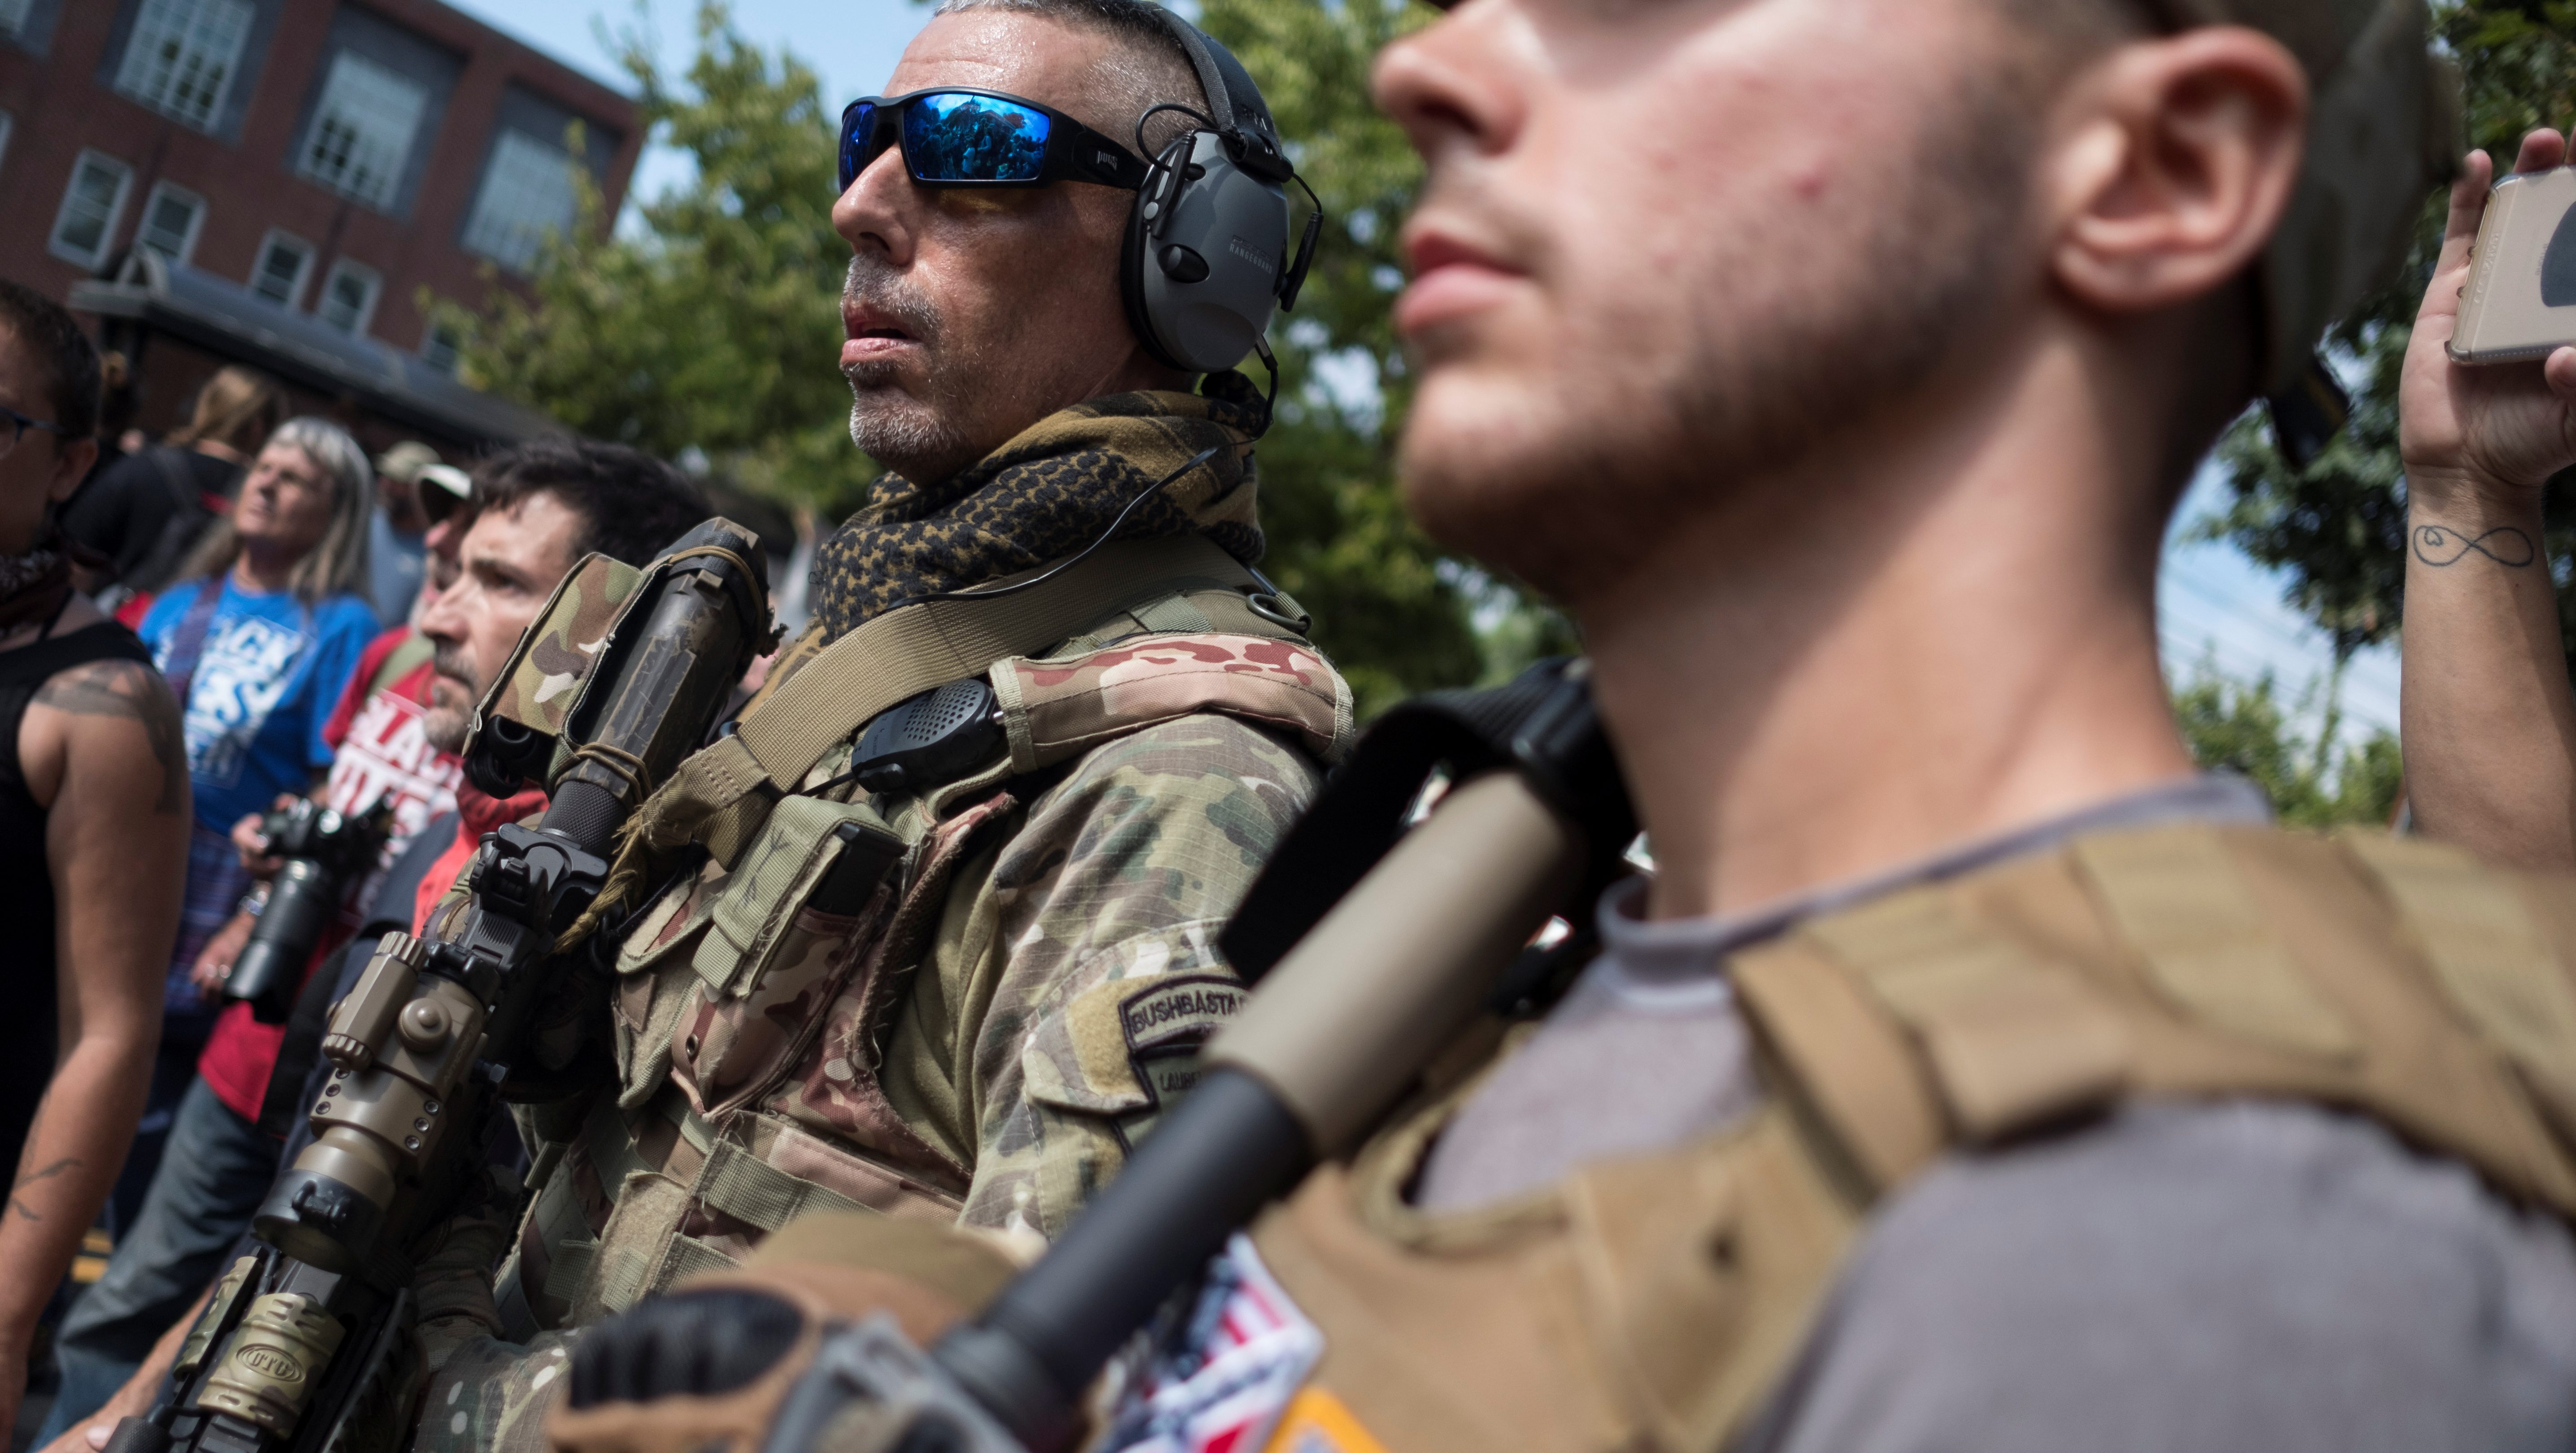 Members of a militia stand near a rally in Charlottesville, Virginia, U.S., August 12, 2017.  REUTERS/Justin Ide - RTS1BIRL